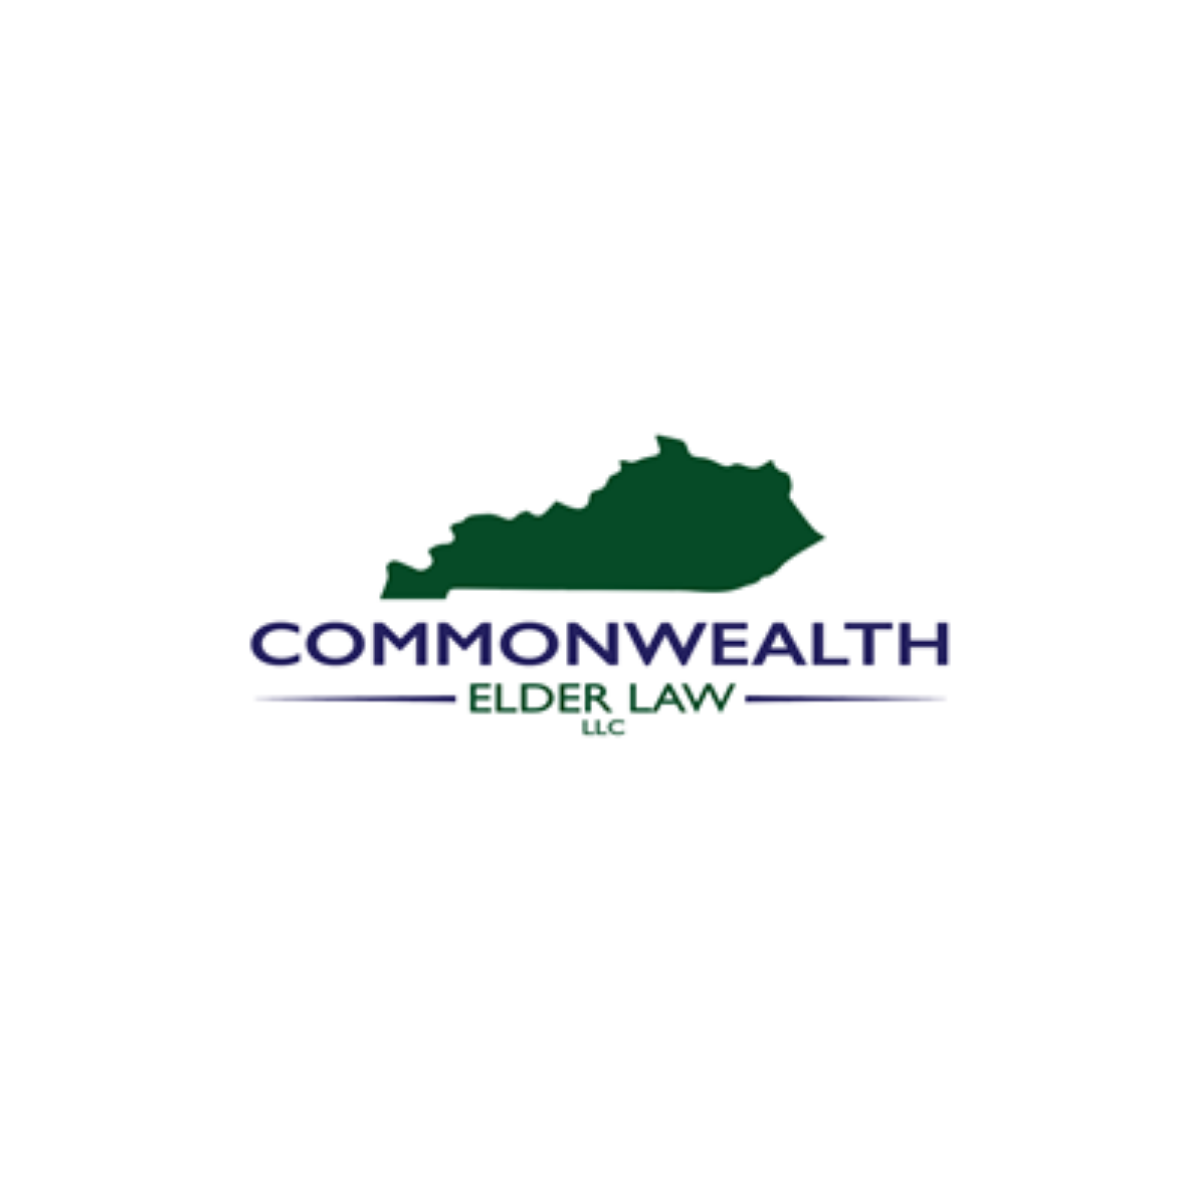 CommonWealth Elder Law